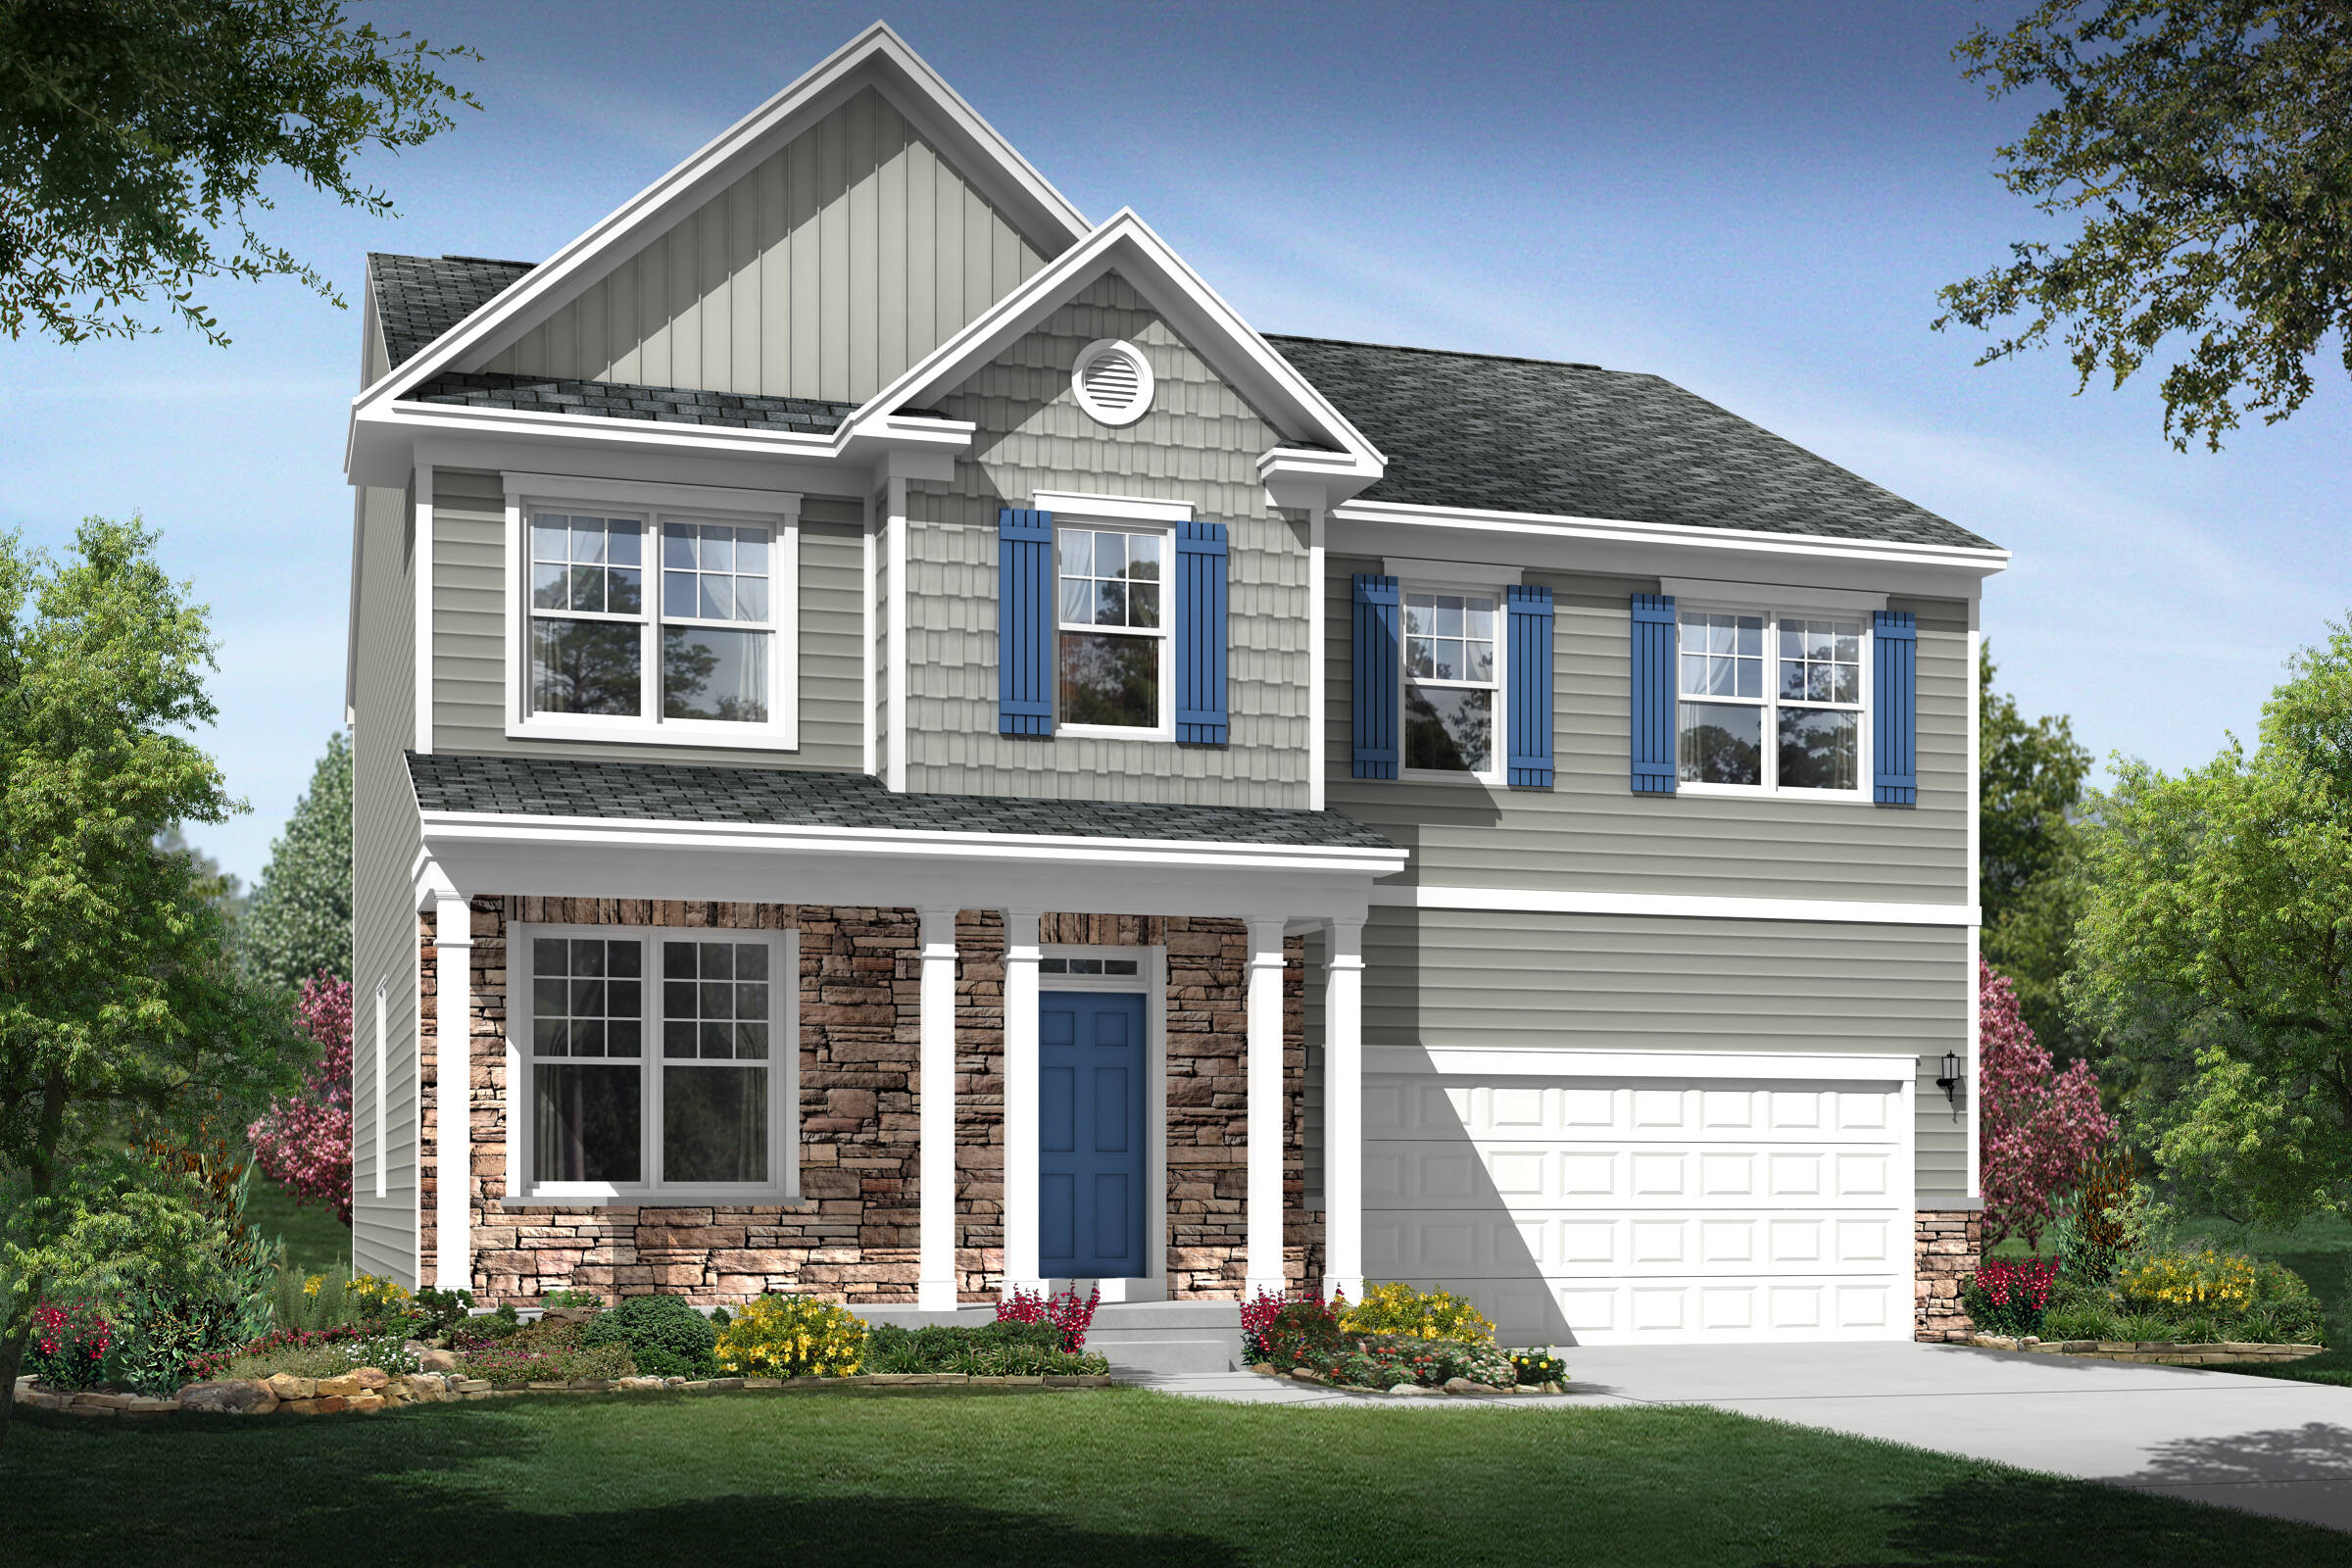 tomasen d2t new homes stone exterior cleveland preview